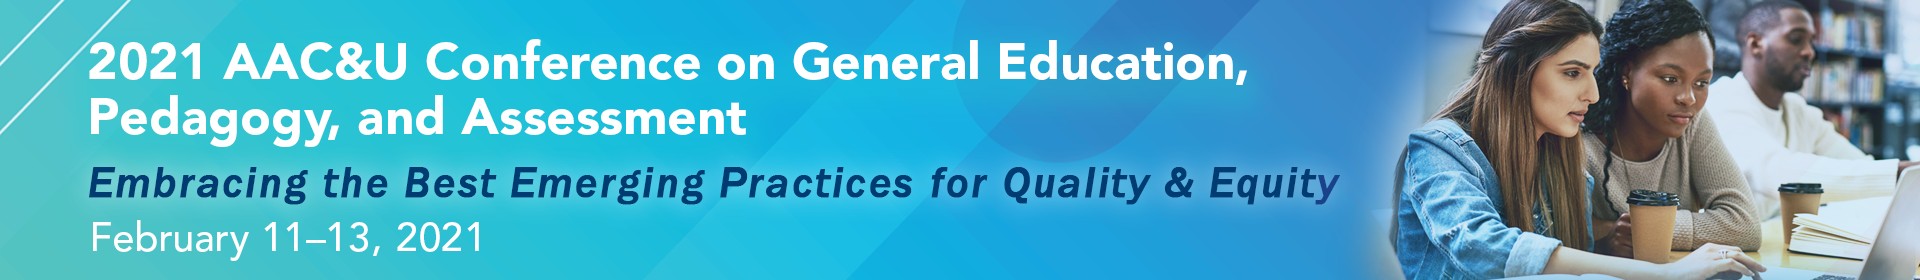 2021 General Education, Pedagogy, and Assessment Conference Event Banner